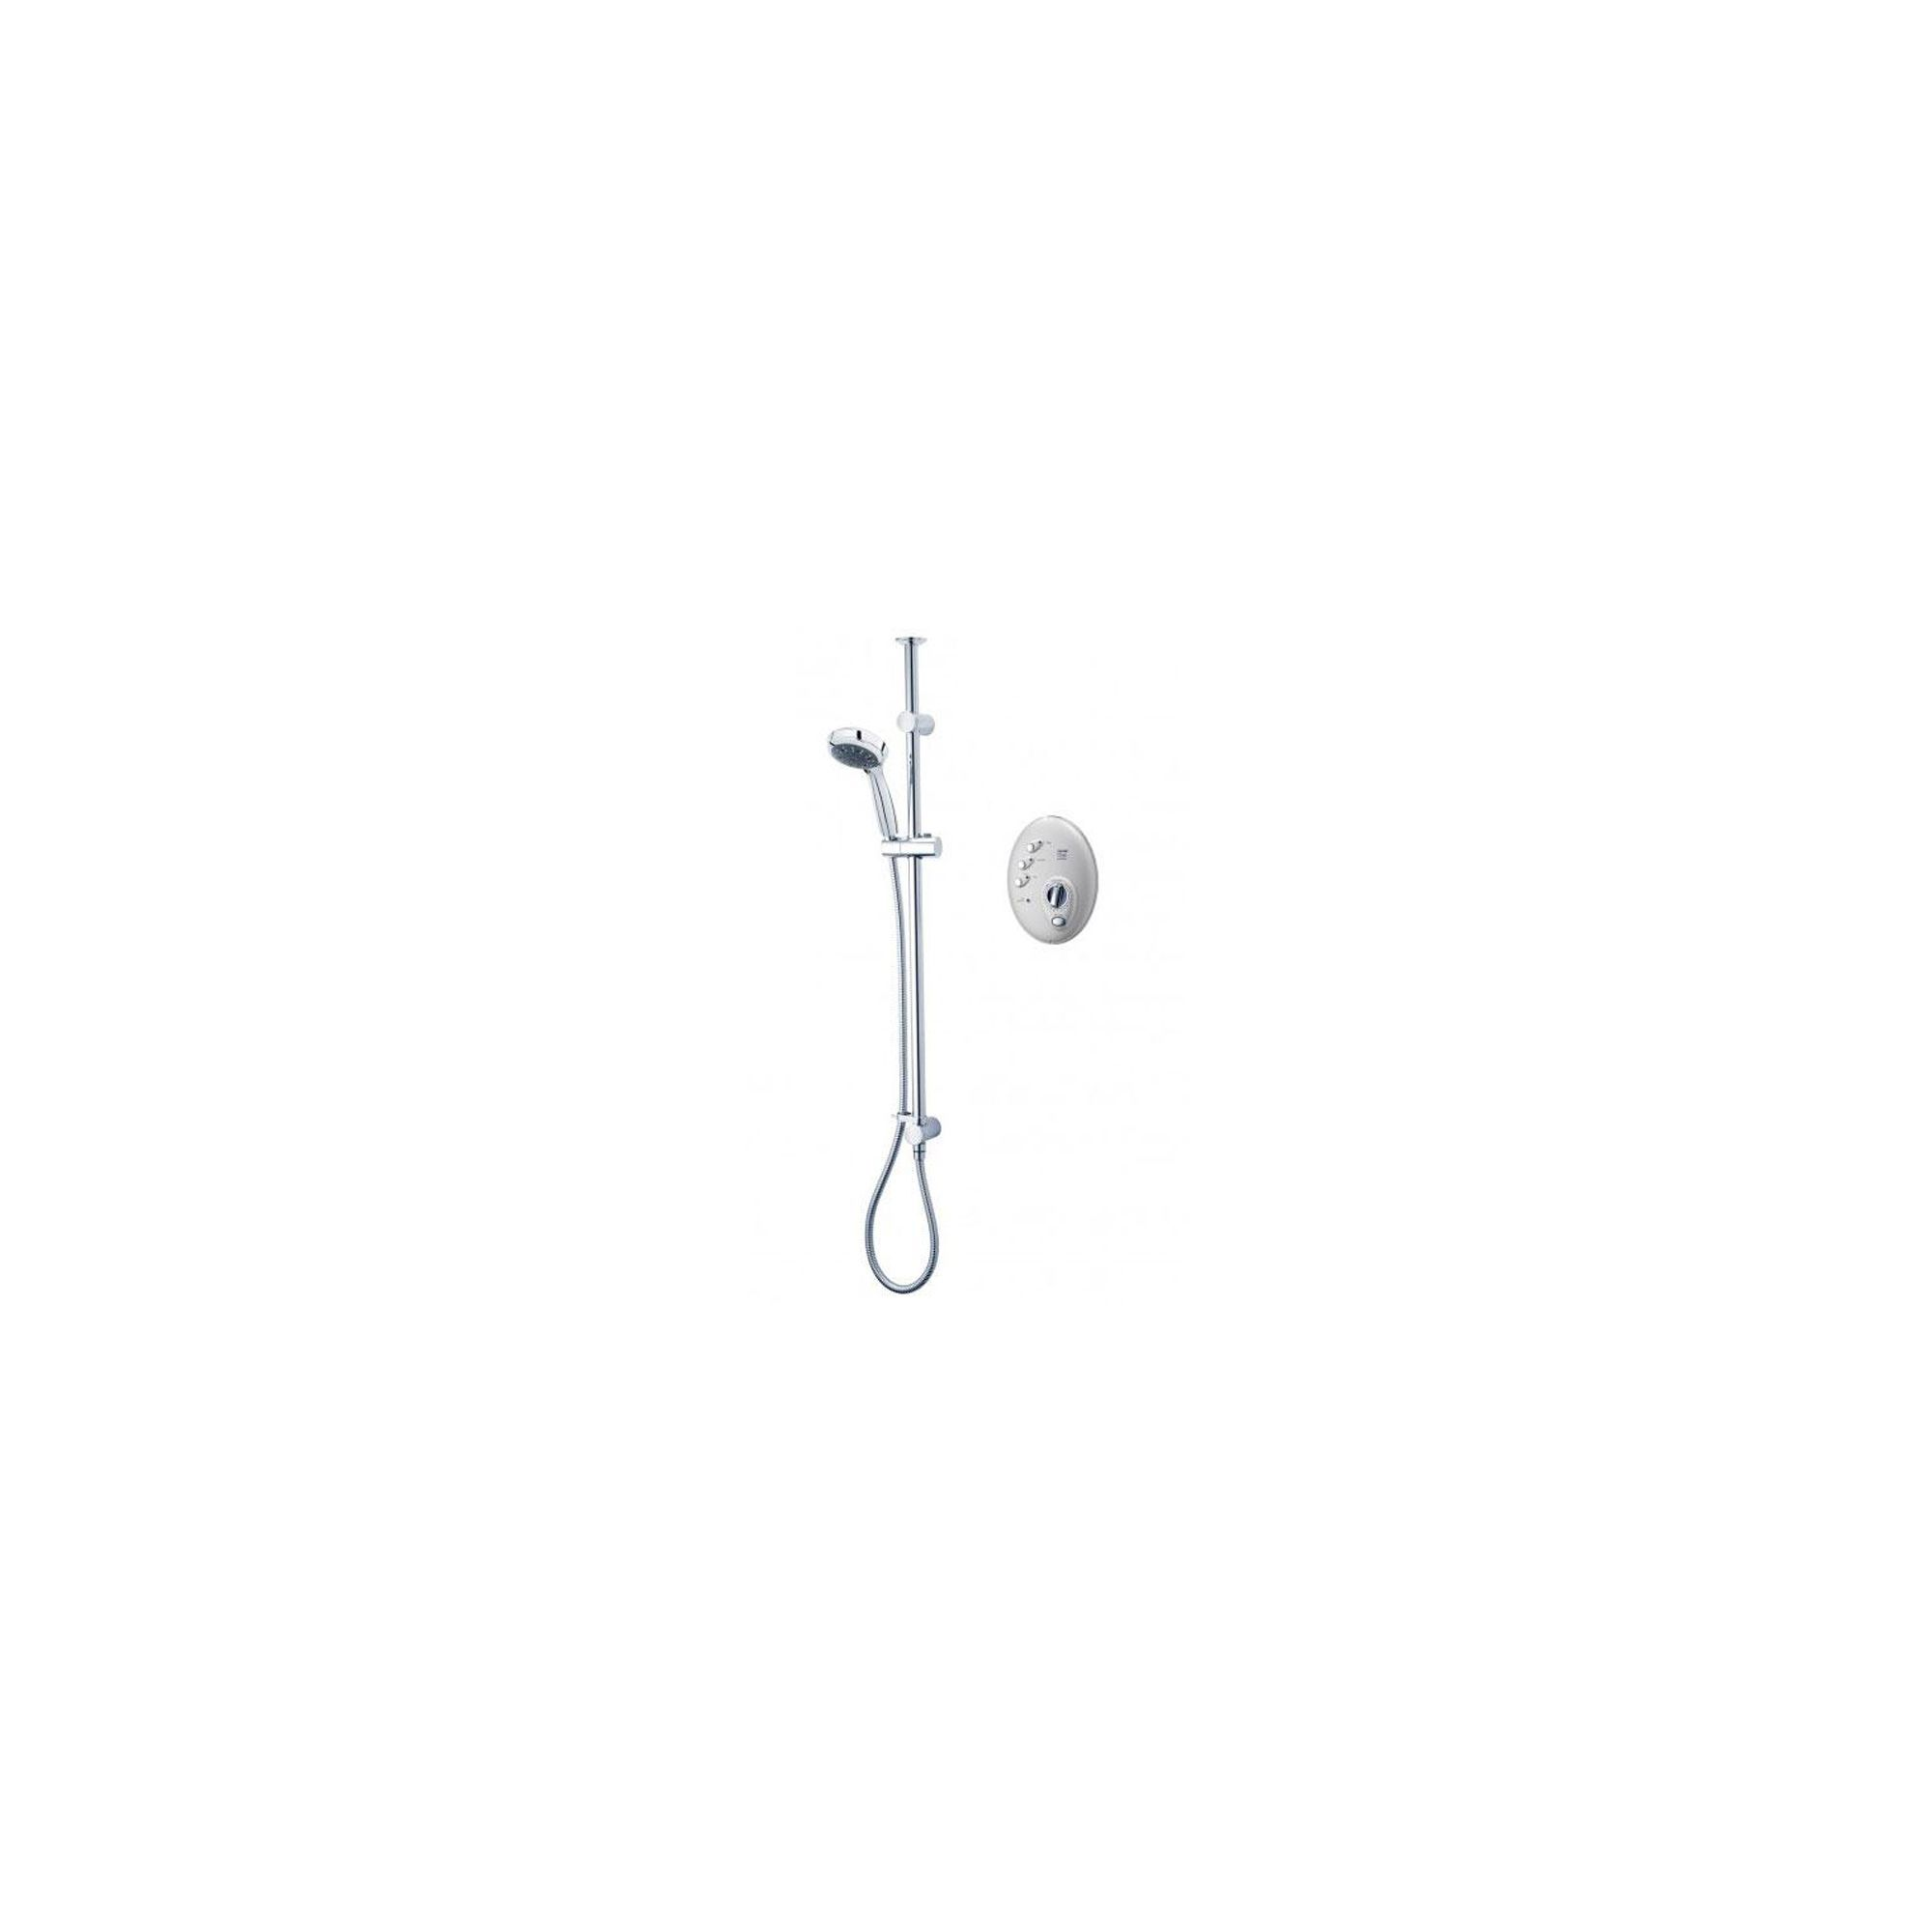 Triton T300si Digital Wireless Electric Shower Satin/Chrome 9.5 kW at Tesco Direct